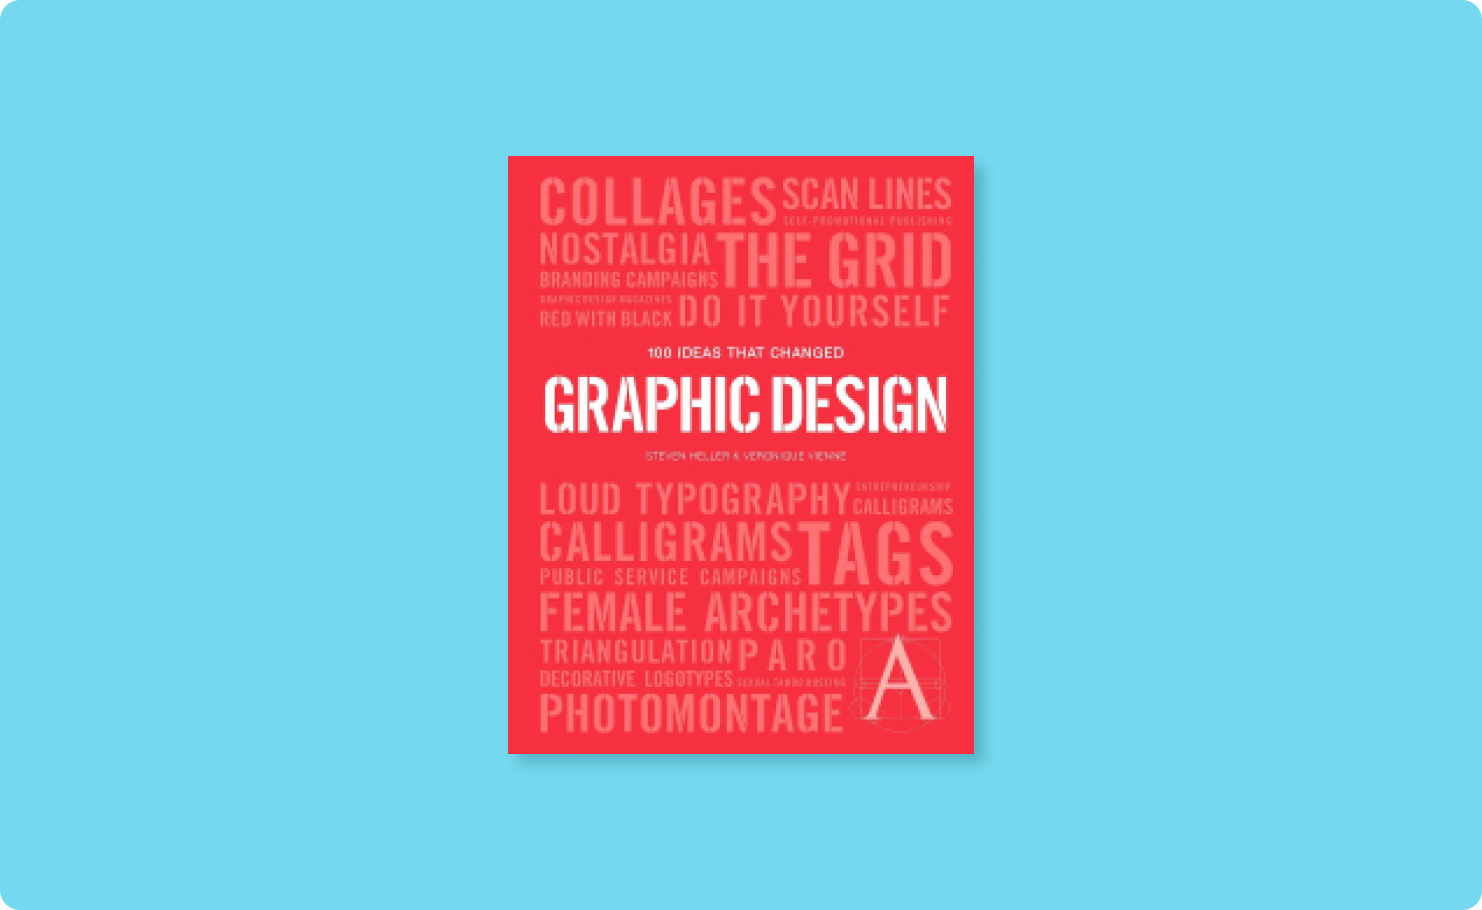 Cover image of the book: 100 Ideas That Changed Graphic Design